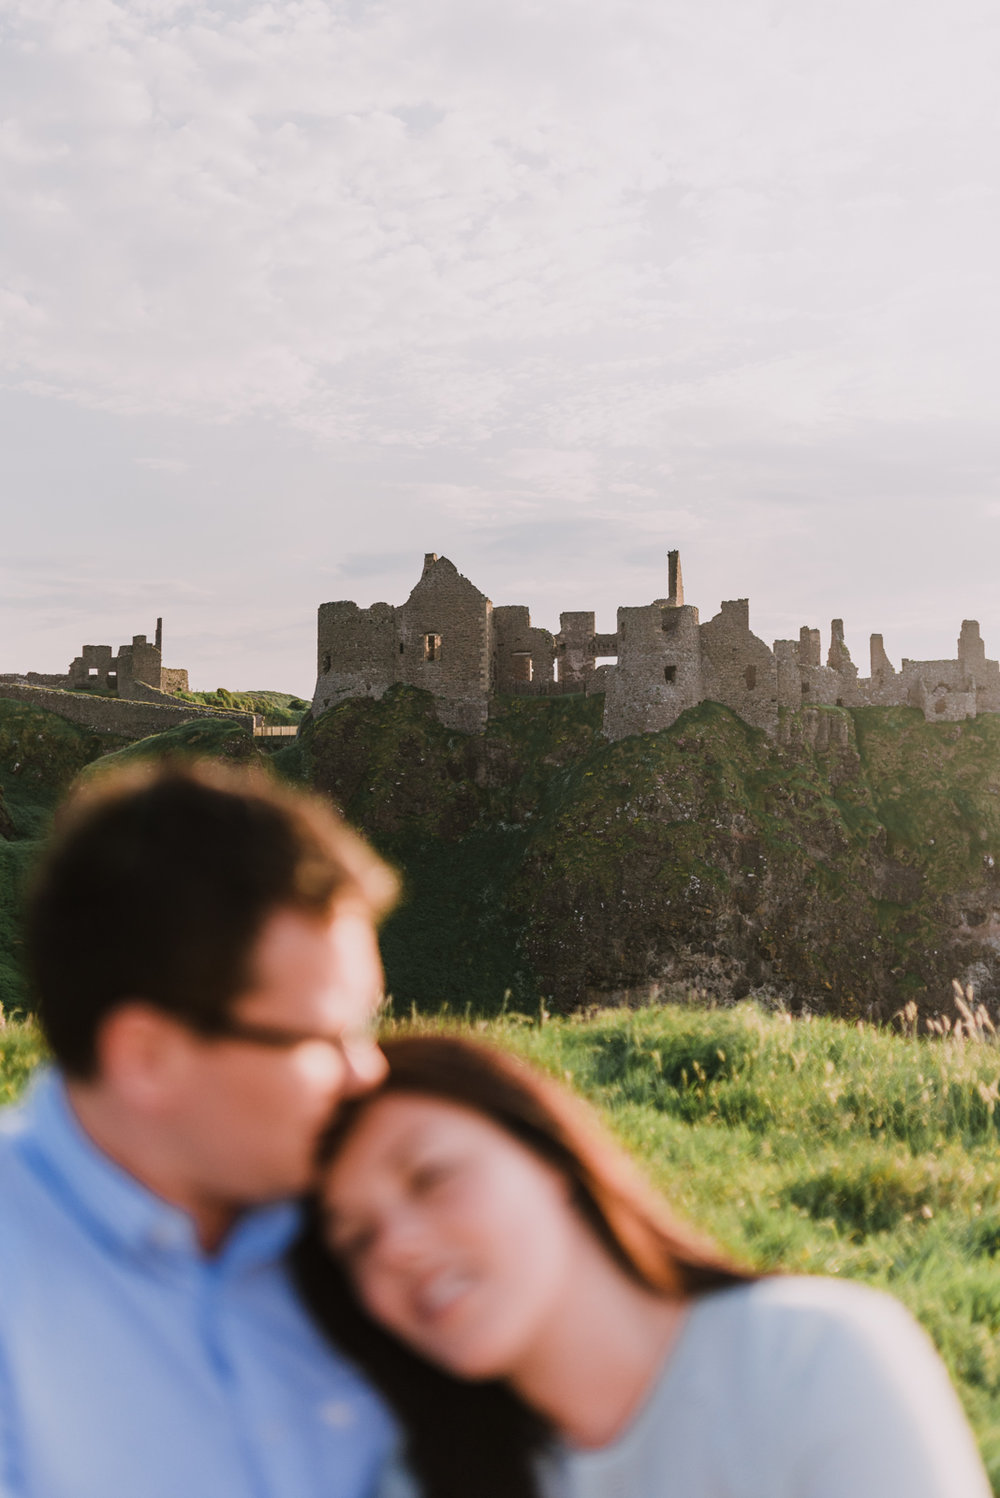 sunset engagement photos by Hello, Sugar taken at Dunluce Castle, Northern Ireland-12.jpg